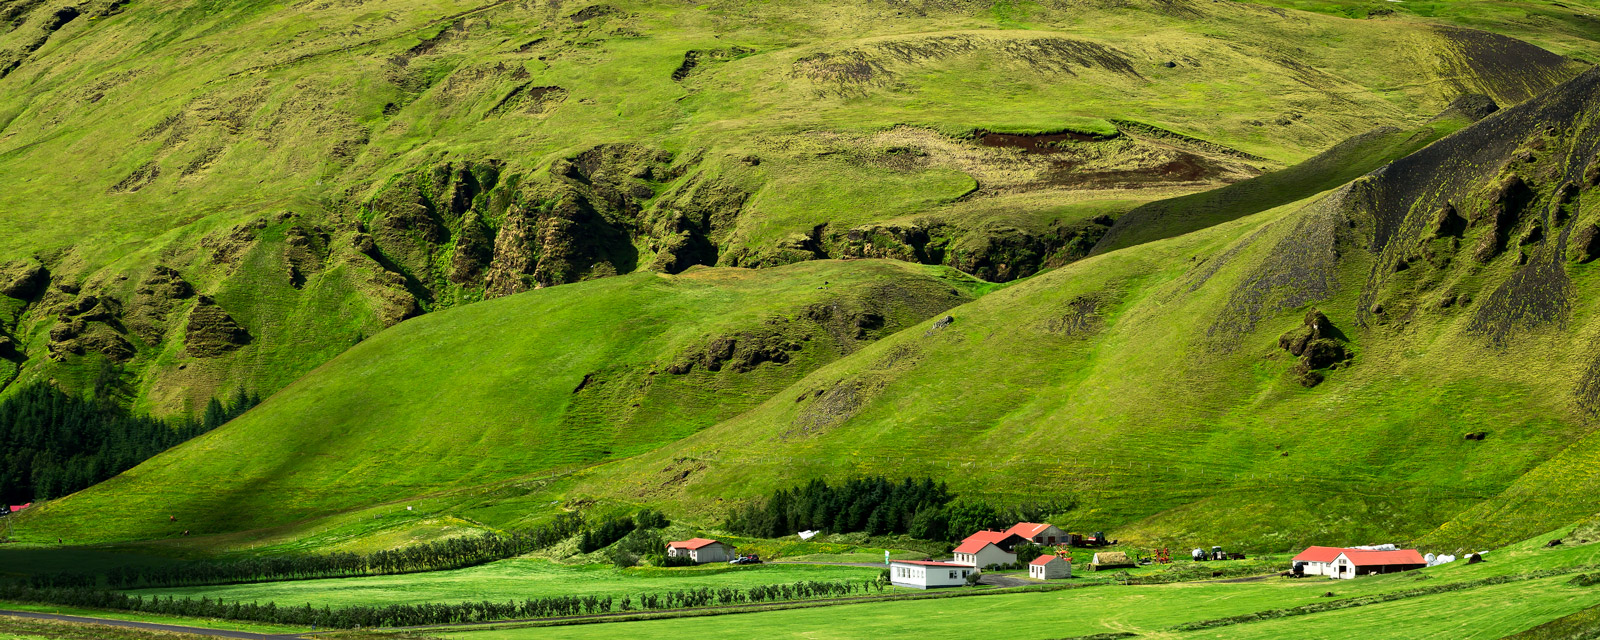 A Limited Edition, Fine Art photograph of an wonderful scene of a farm in front of rolling green hills in the summer in Vik...